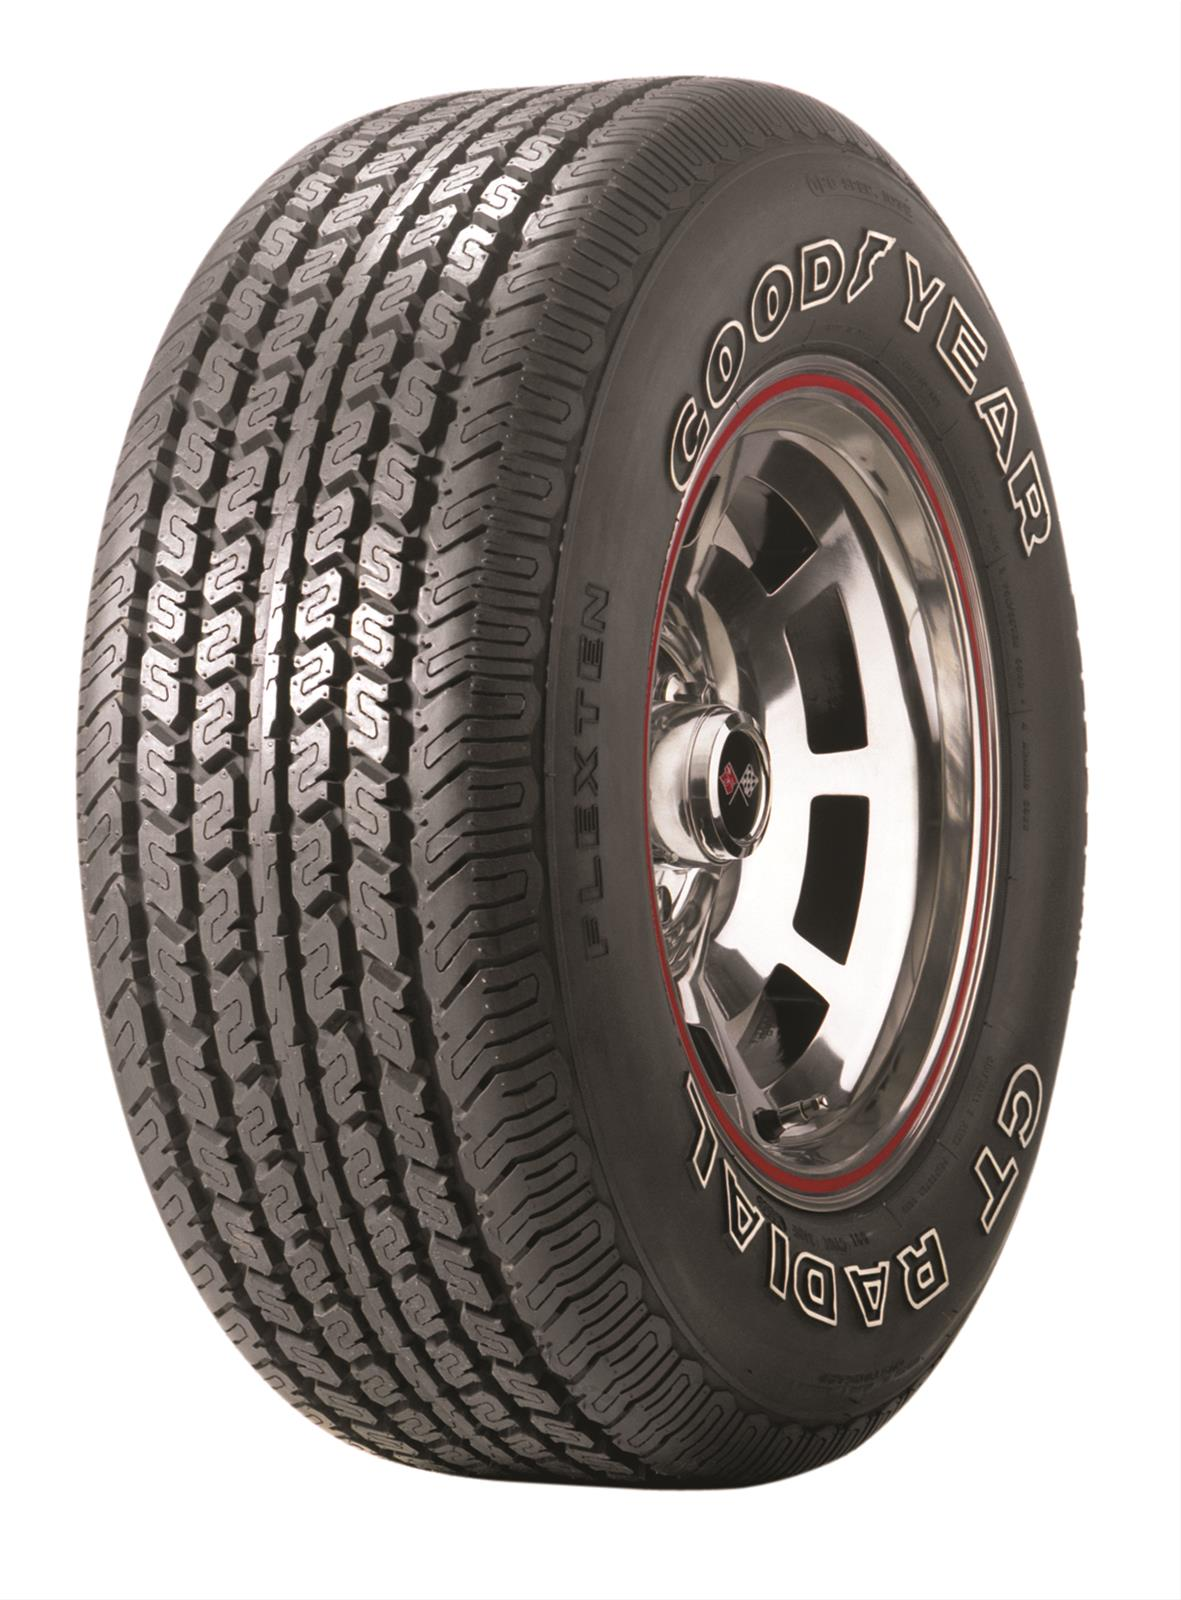 Kelsey Tire Goodyear GT Radial Tires P3AHF Free Shipping